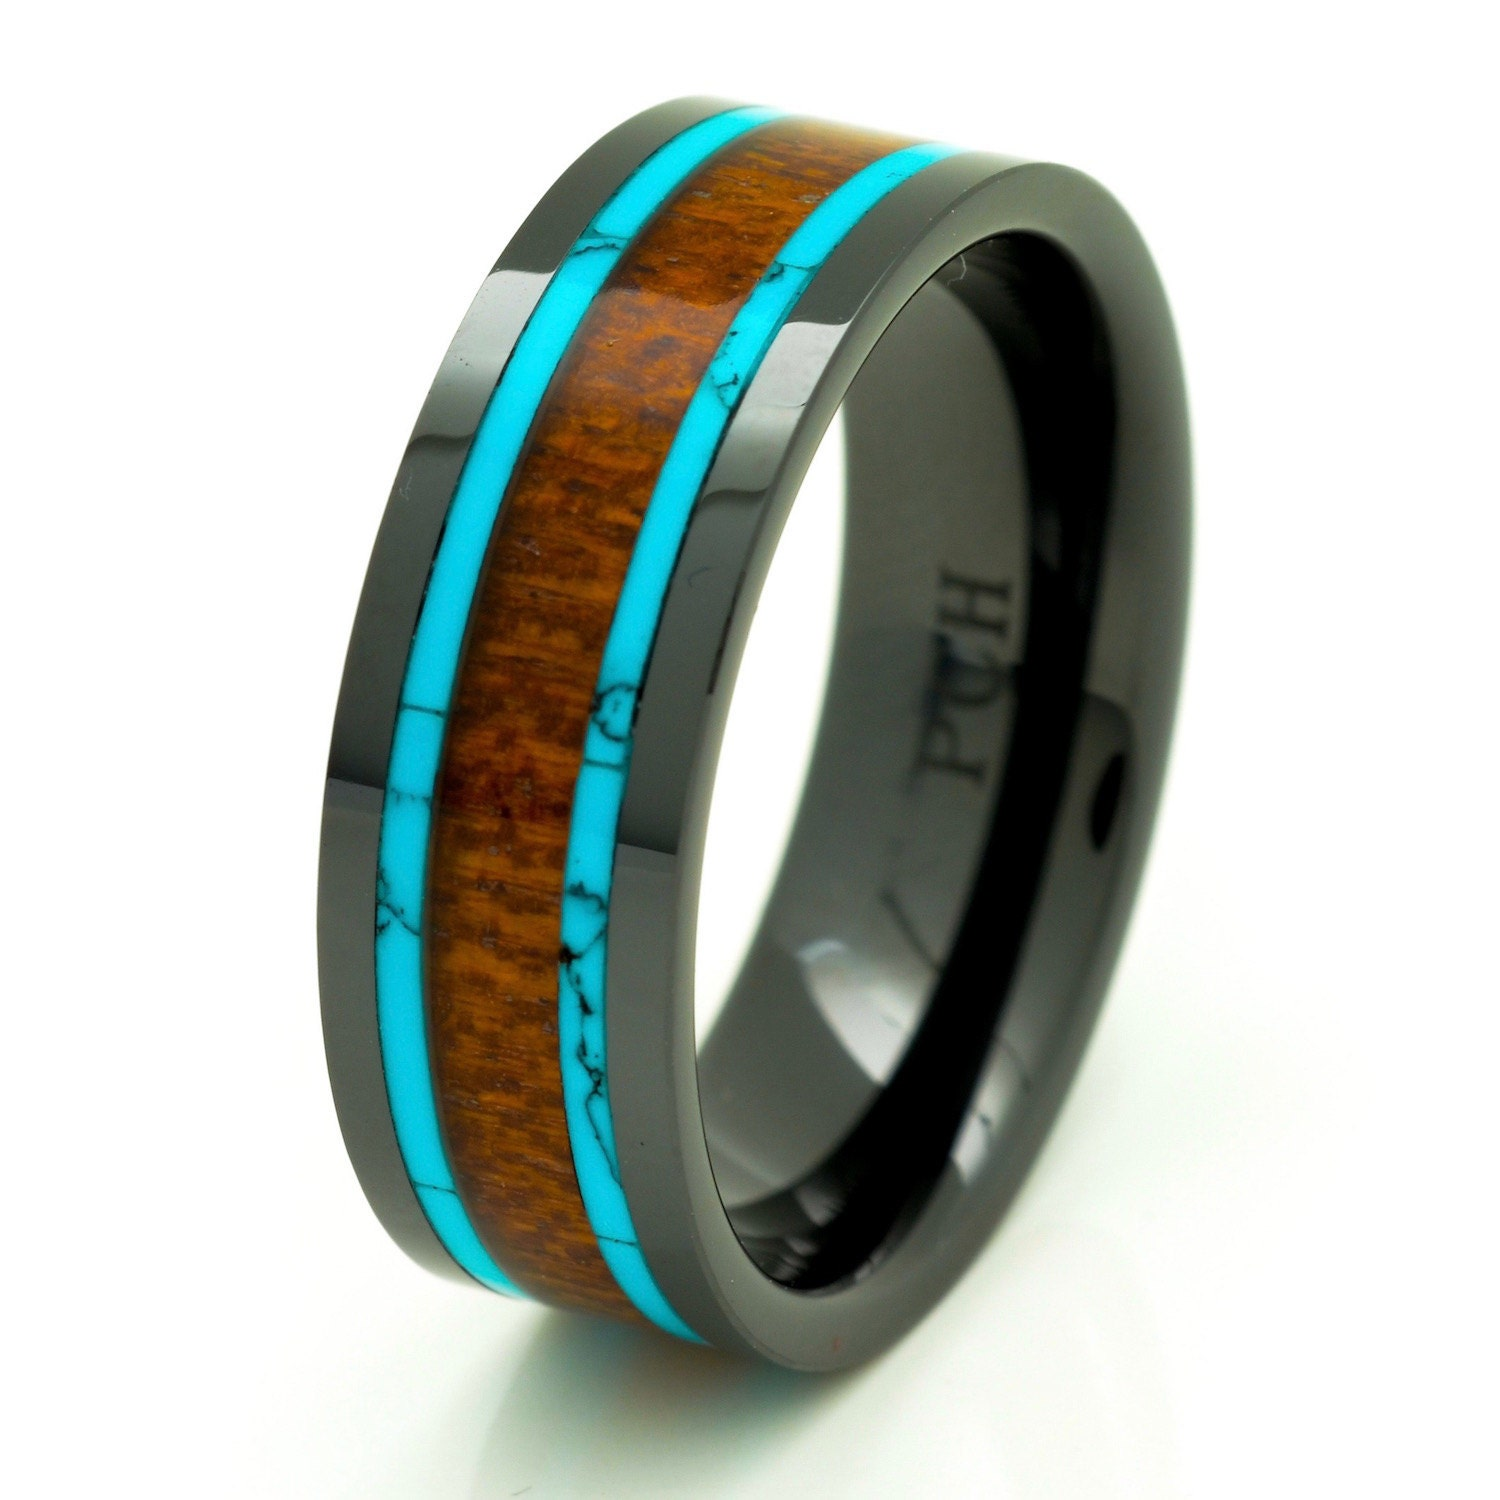 ceramic wood ring mens ceramic wedding bands Men s Women s Koa Wood Wedding Band with Turquoise 8mm Flat Top Black Ceramic Size 7 to 15